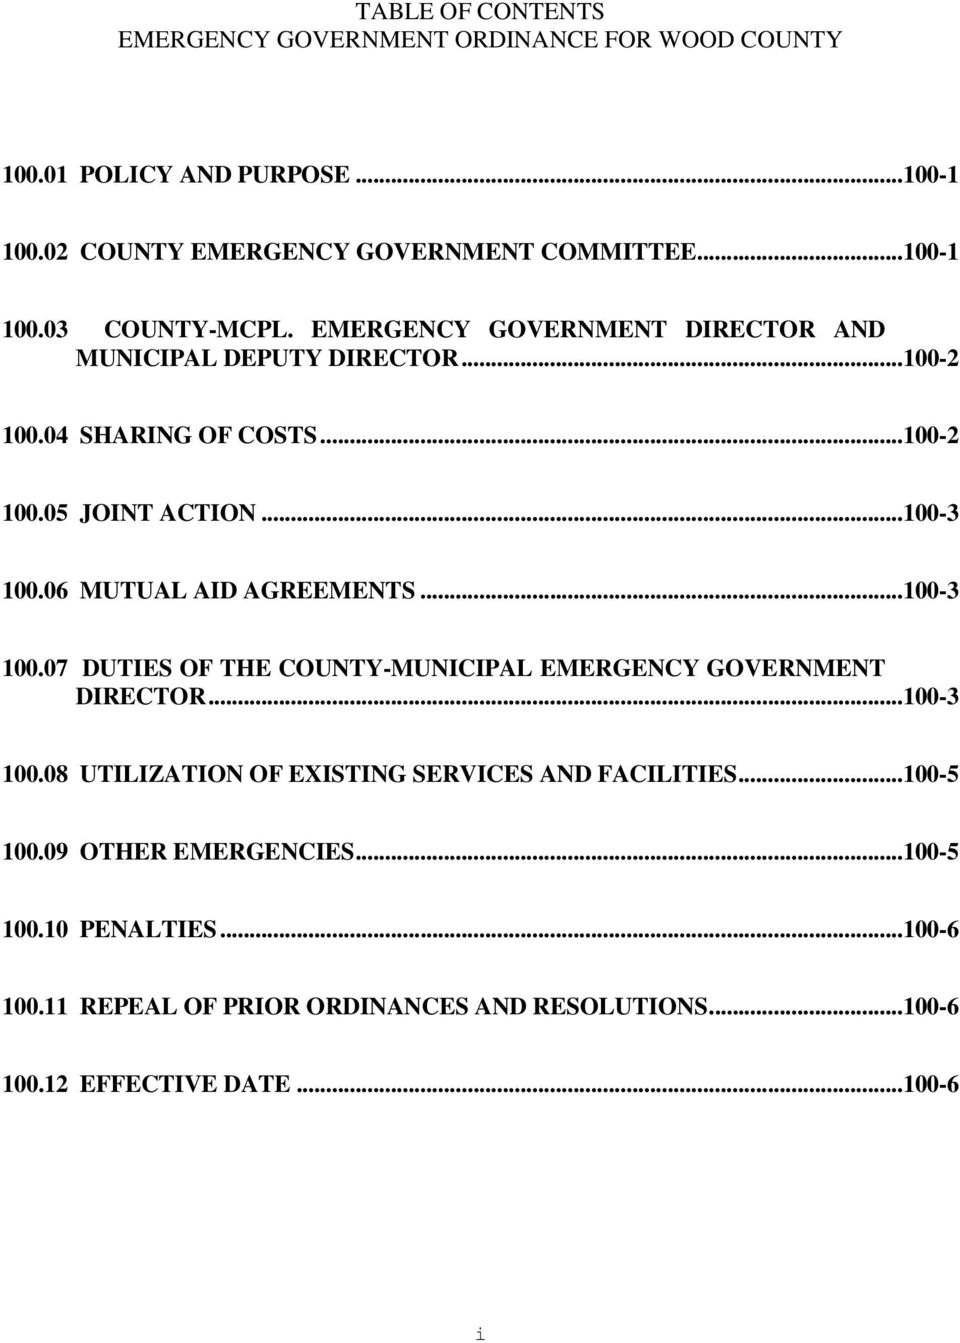 06 MUTUAL AID AGREEMENTS...100-3 100.07 DUTIES OF THE COUNTY-MUNICIPAL EMERGENCY GOVERNMENT DIRECTOR...100-3 100.08 UTILIZATION OF EXISTING SERVICES AND FACILITIES.